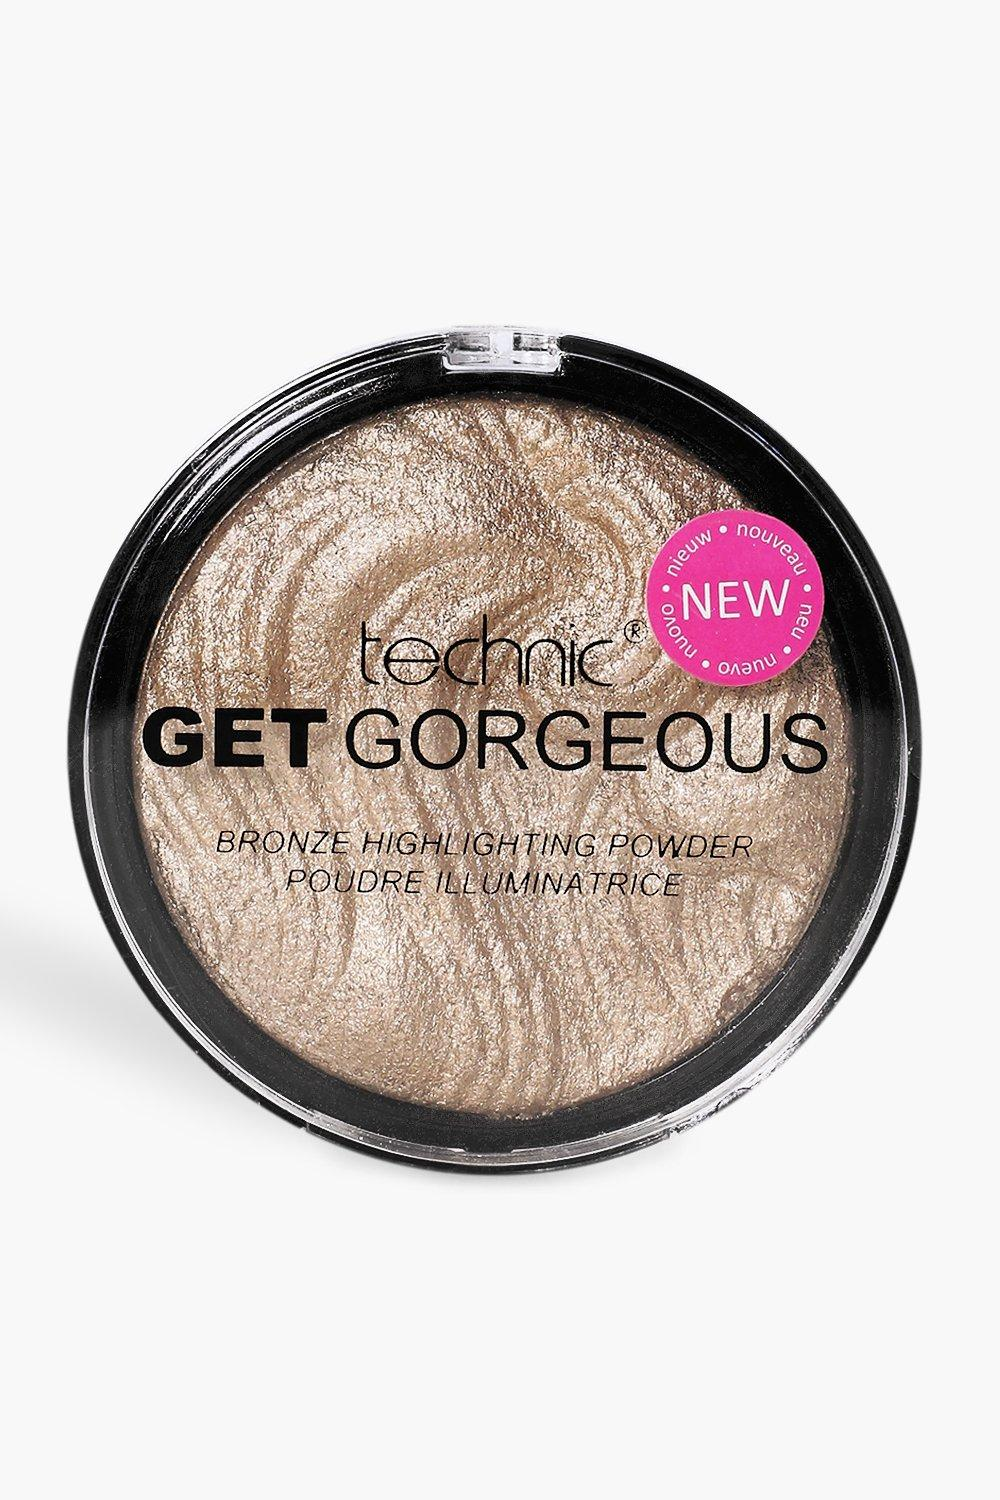 Get Gorgeous Bronzing Highlighter